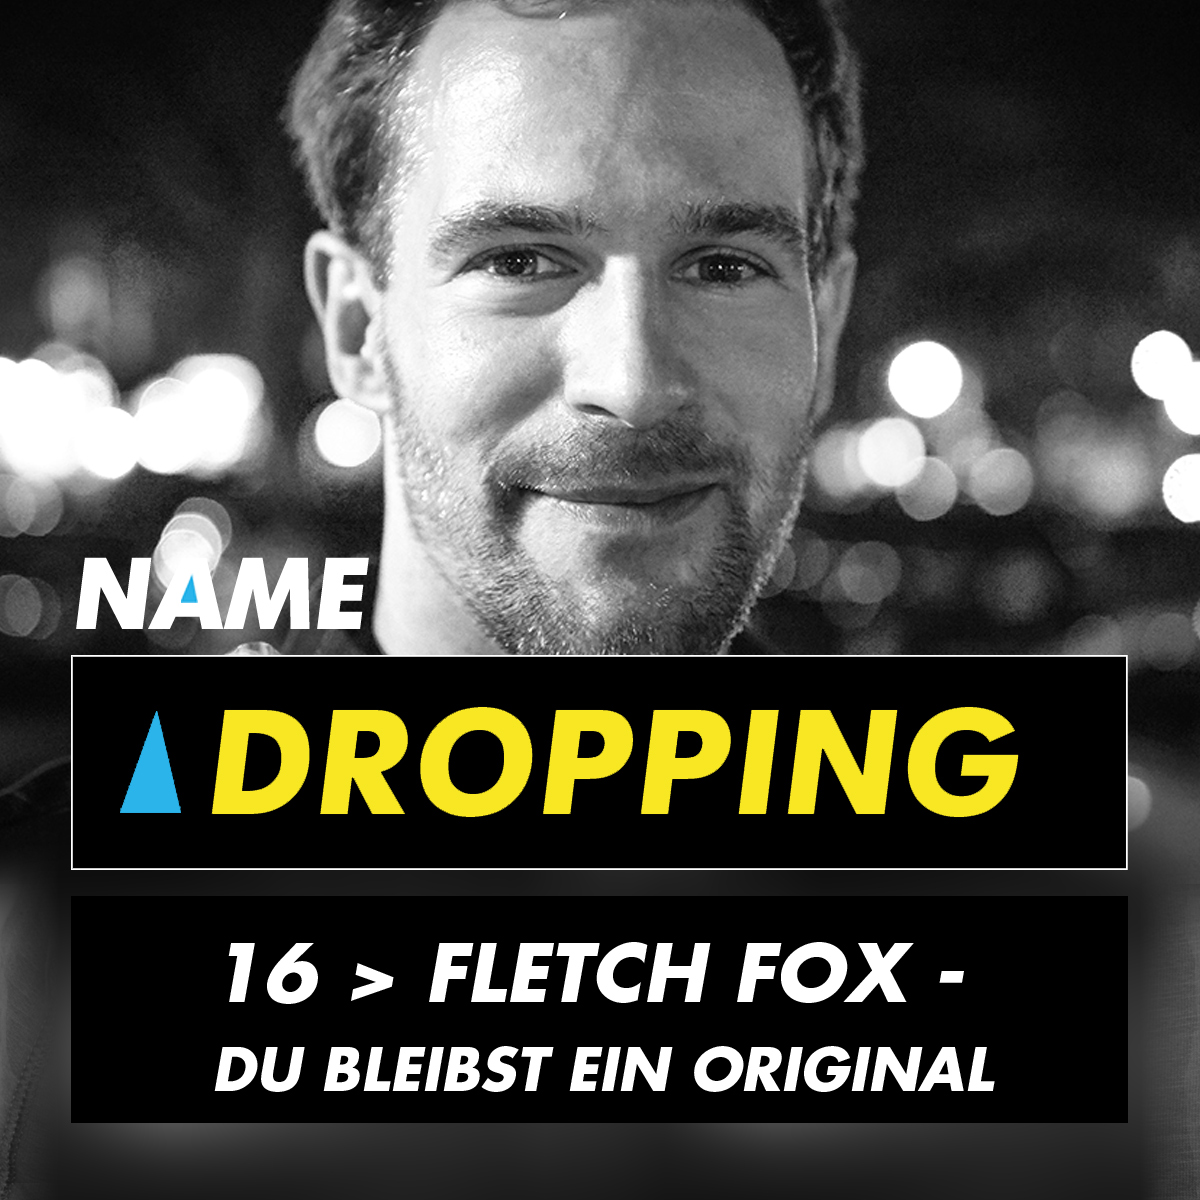 fletch fox - au bleibst ein original